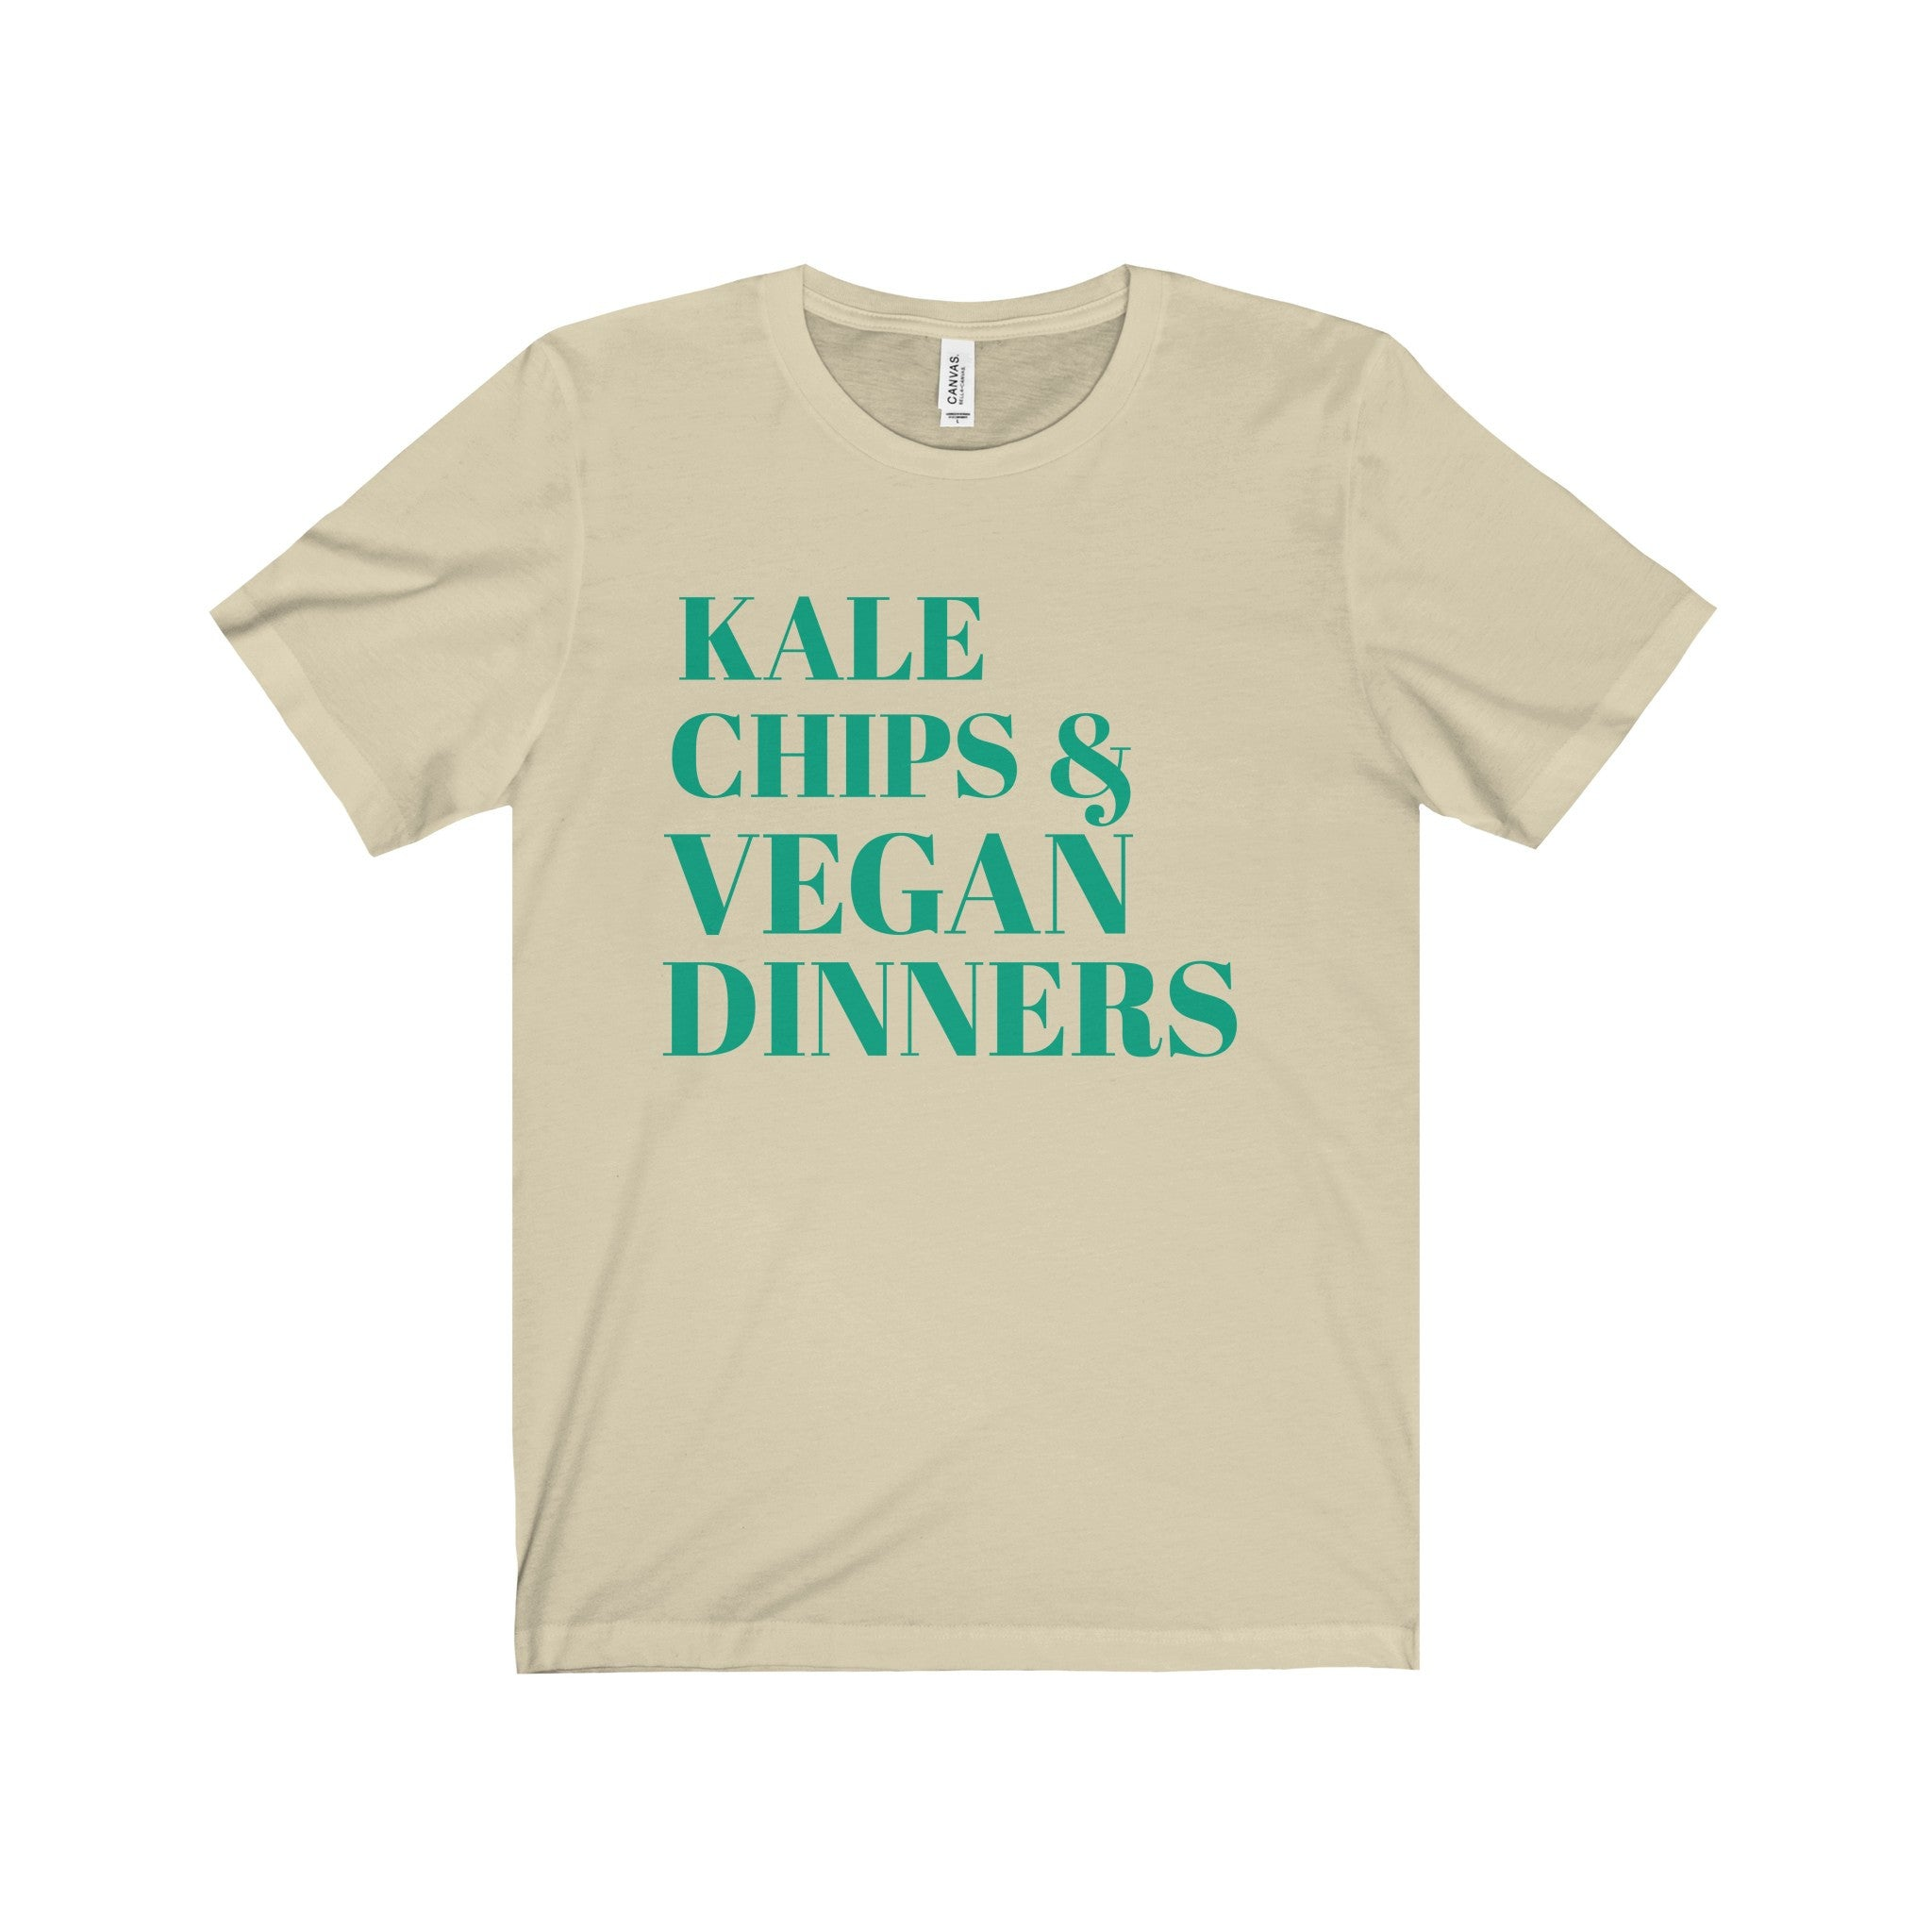 Kale Chips and Vegan Dinners Teal Letter Tee (6 colors available)